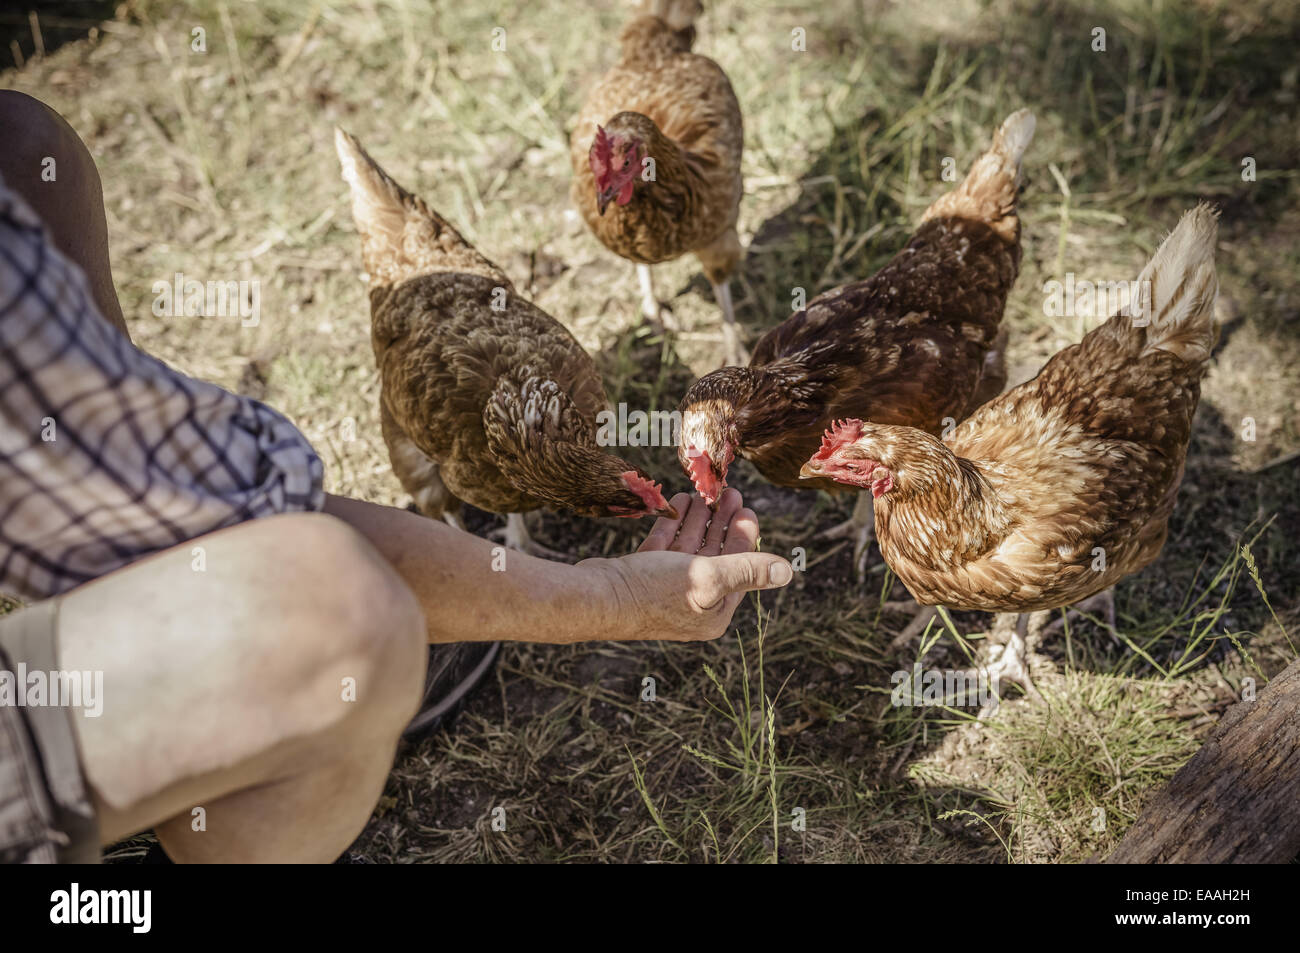 L'alimentation de l'homme quatre poulets. Photo Stock